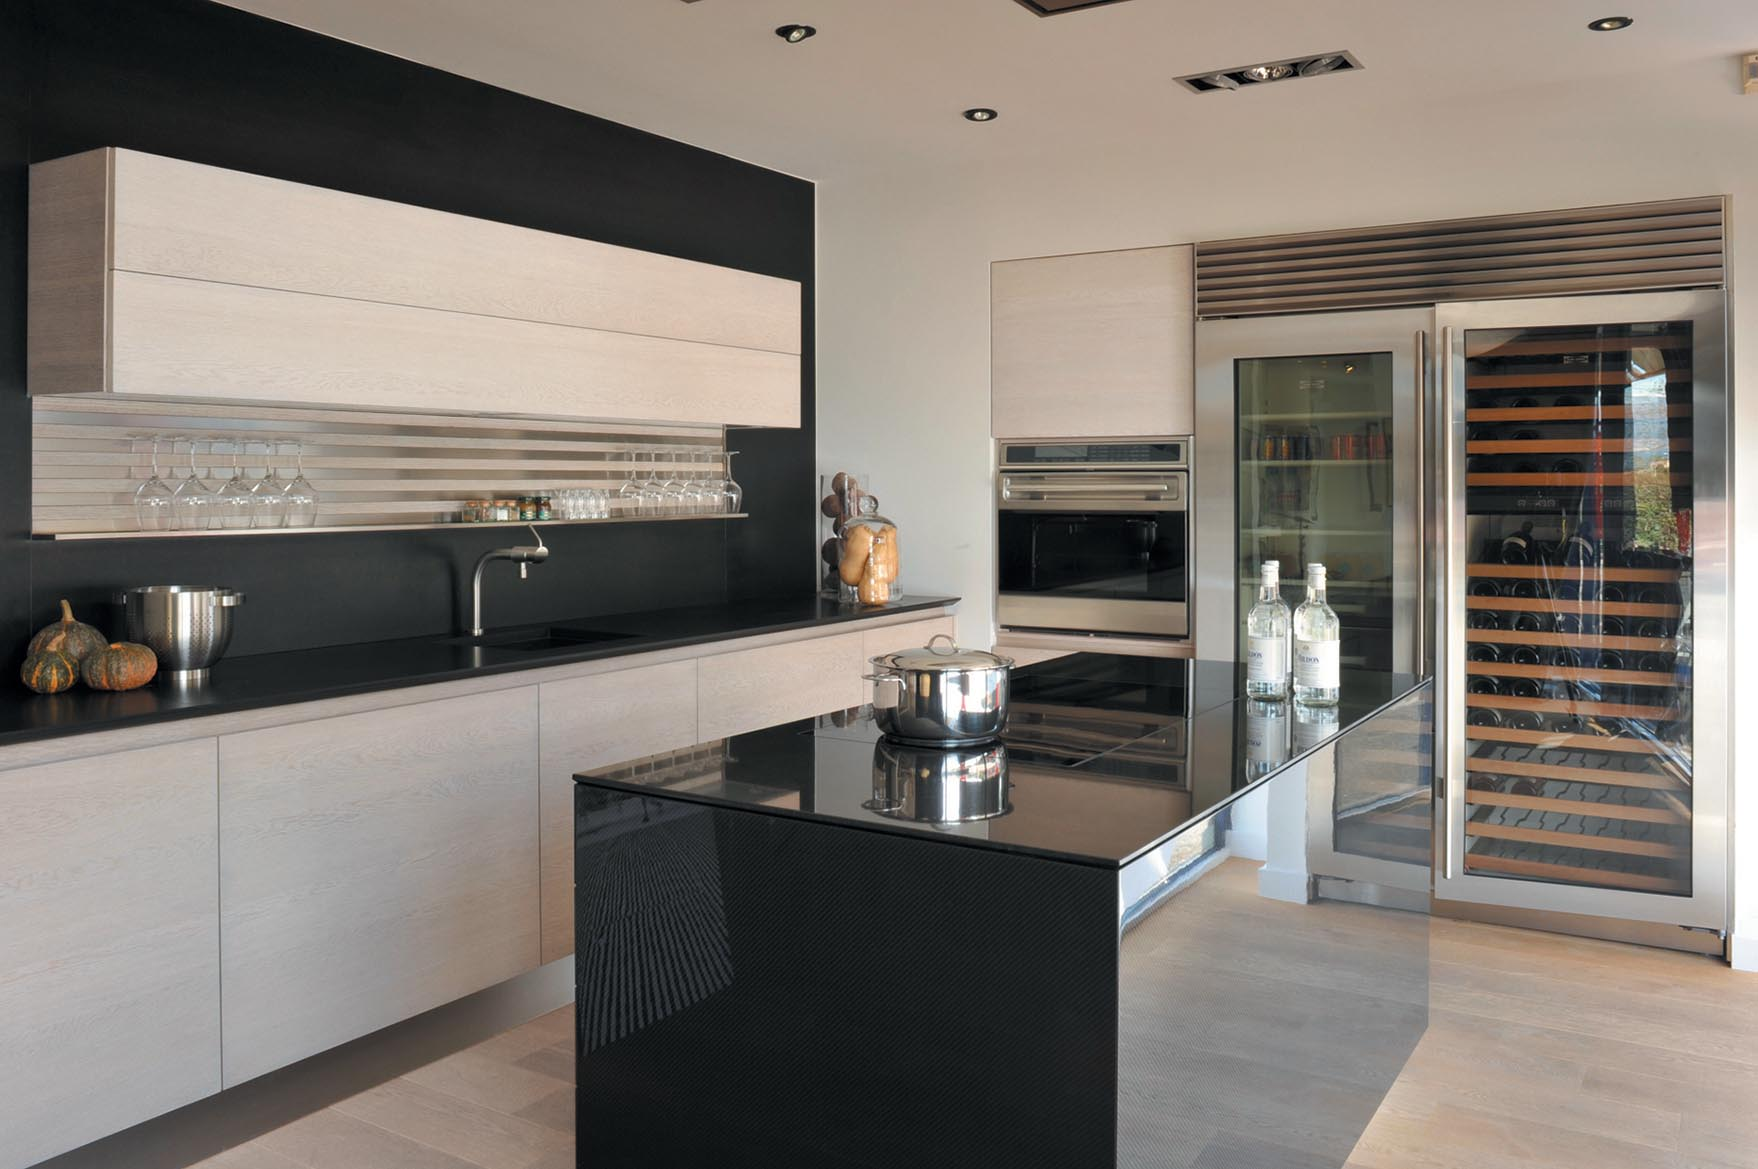 Ultra-modern carbon fiber paired with unfinished oak in this stunning luxury kitchen